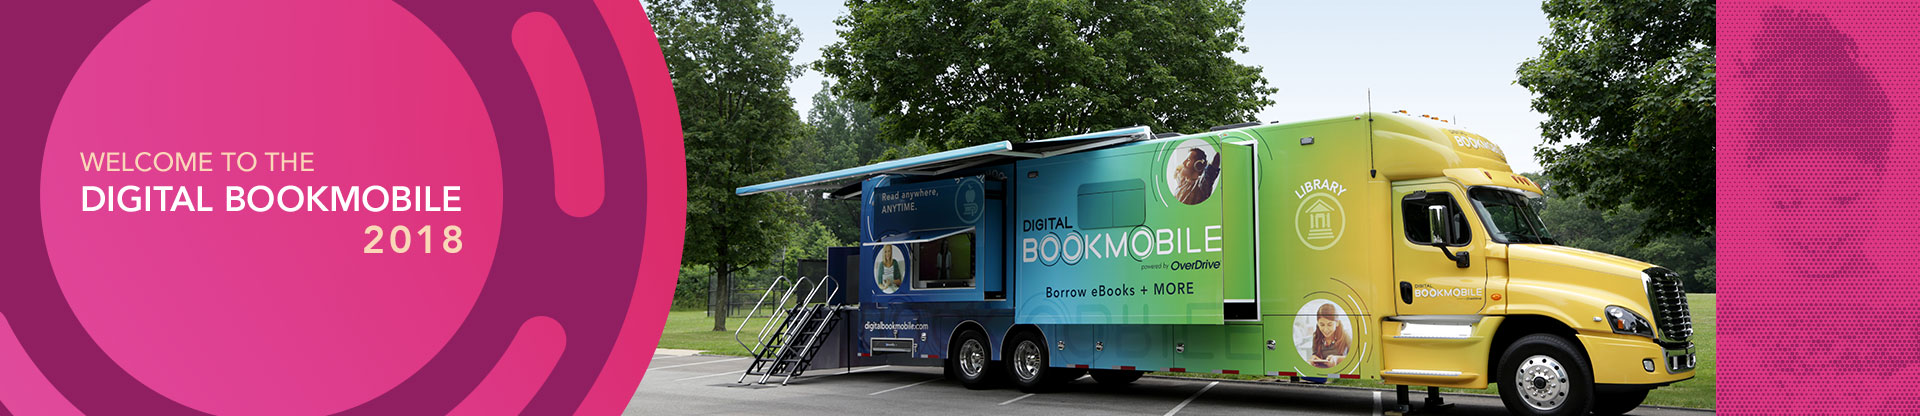 Welcome to the Digital Bookmobile 2018